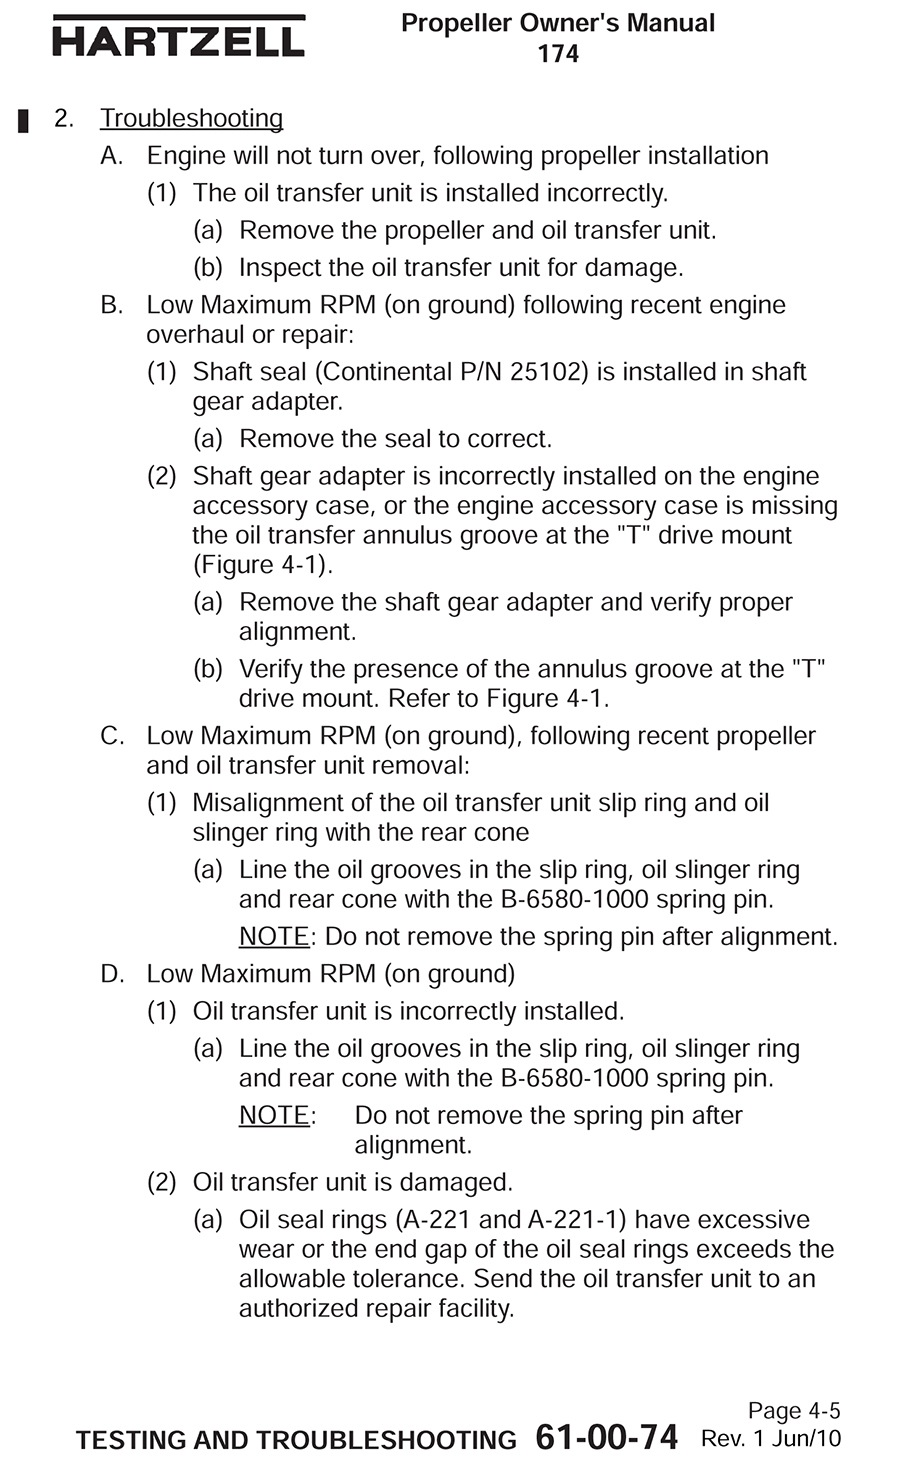 Hartzell Prop Manual 2010 page95